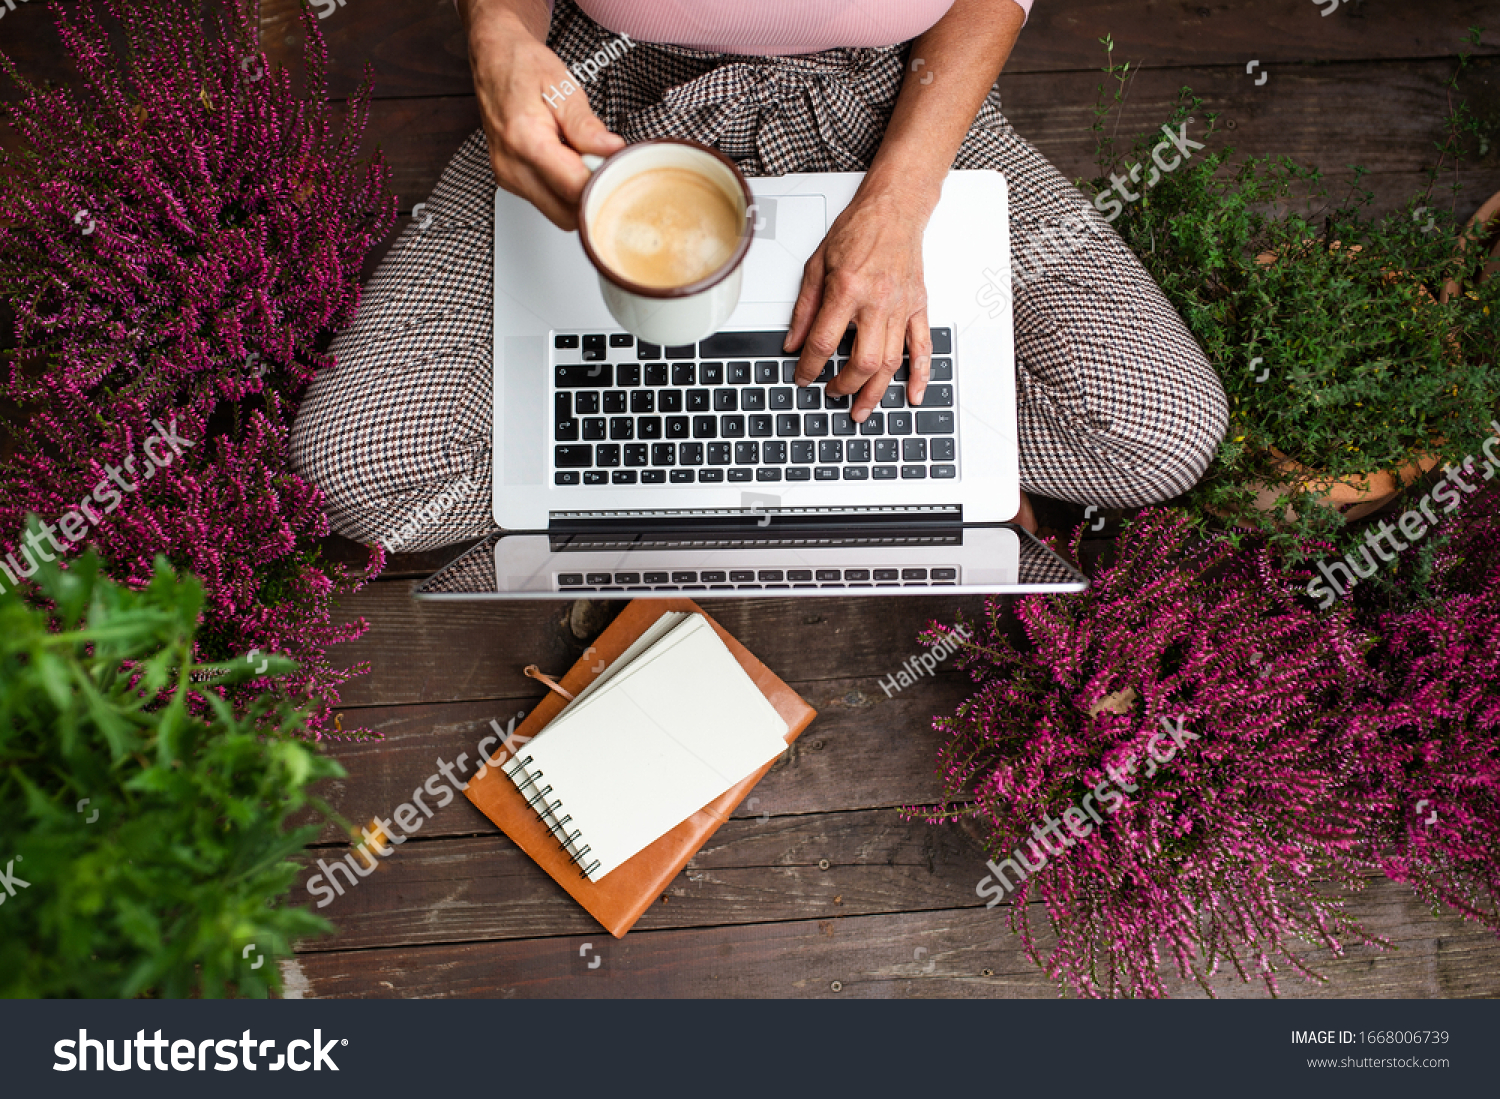 Top view of senior woman with laptop sitting outdoors on terrace, working.